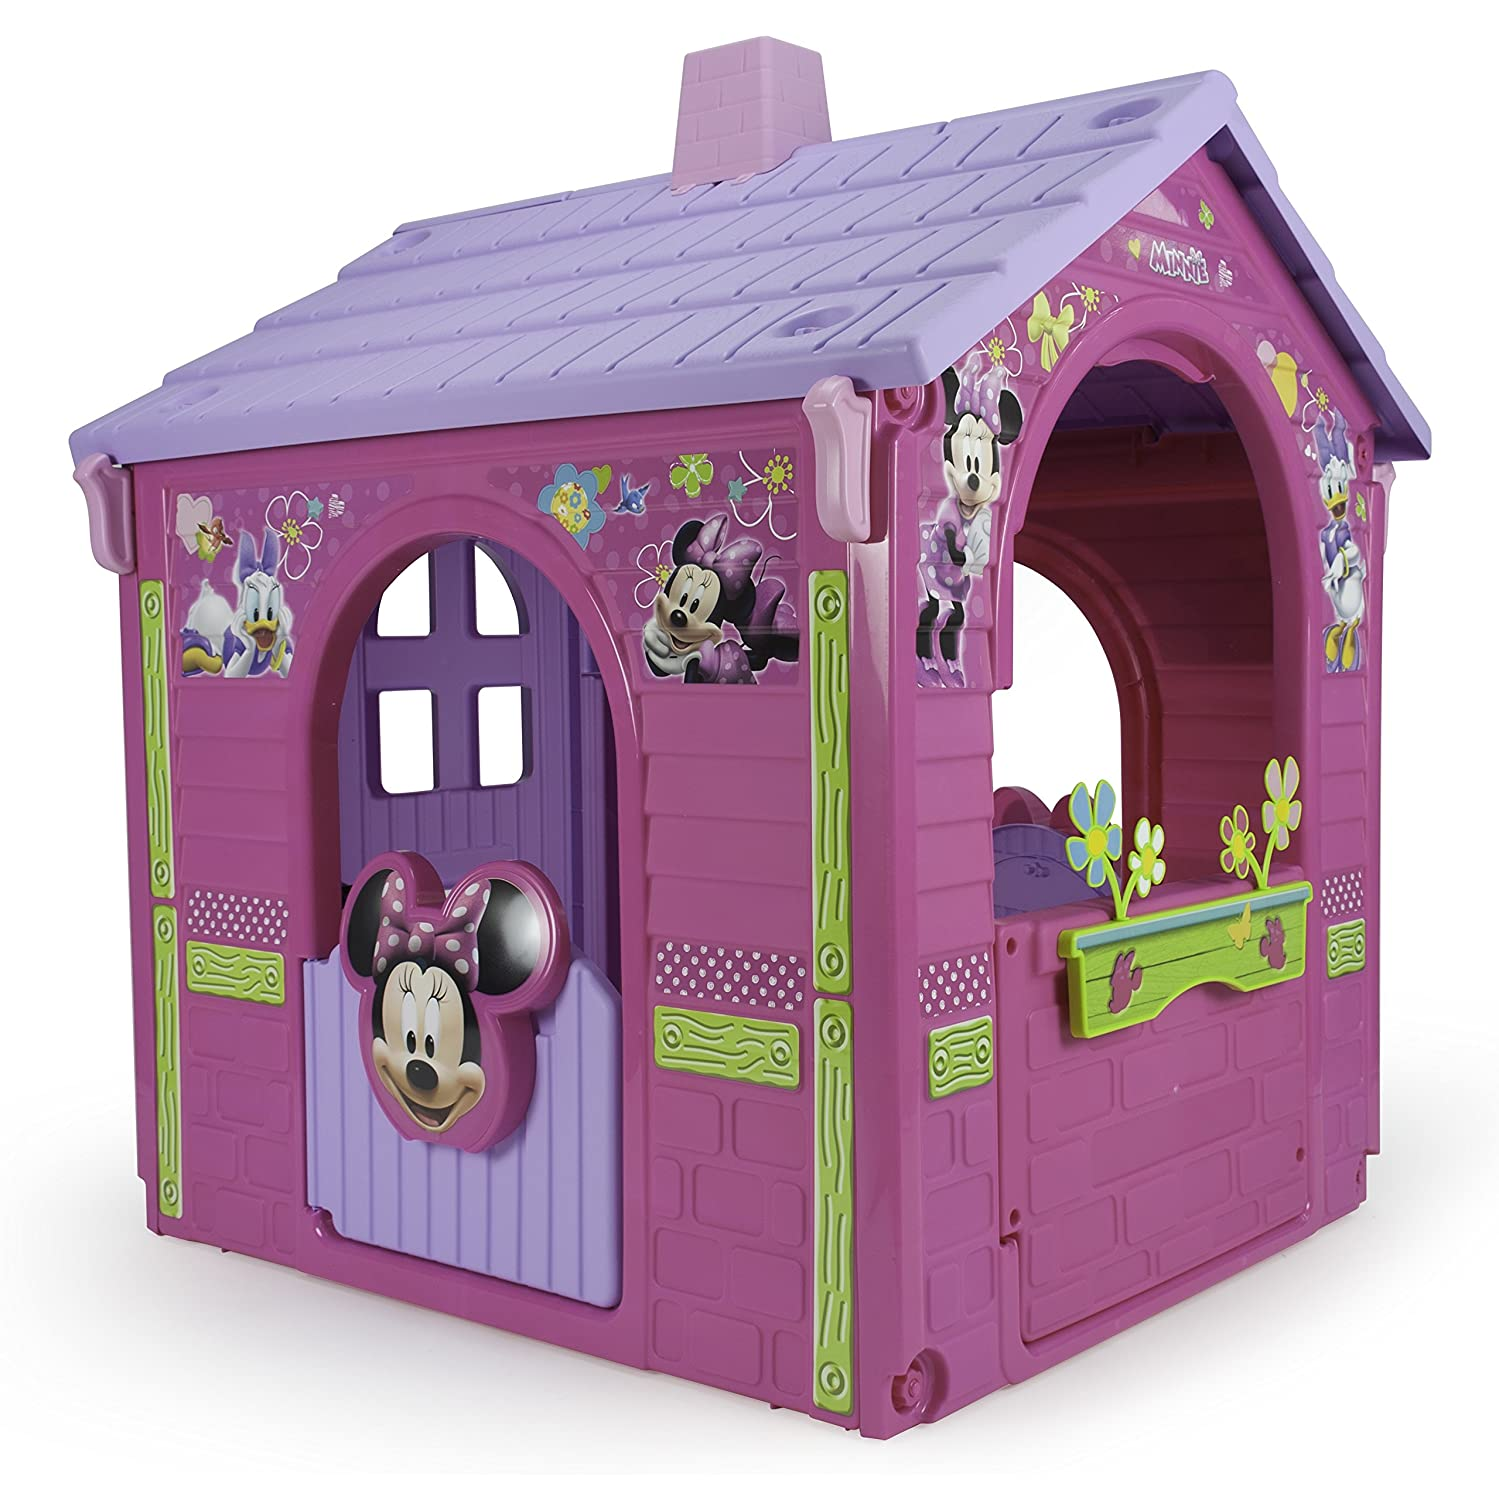 INJUSA Maison de Jardin pour Jeu de Plein air Minnie Mouse: Amazon ...